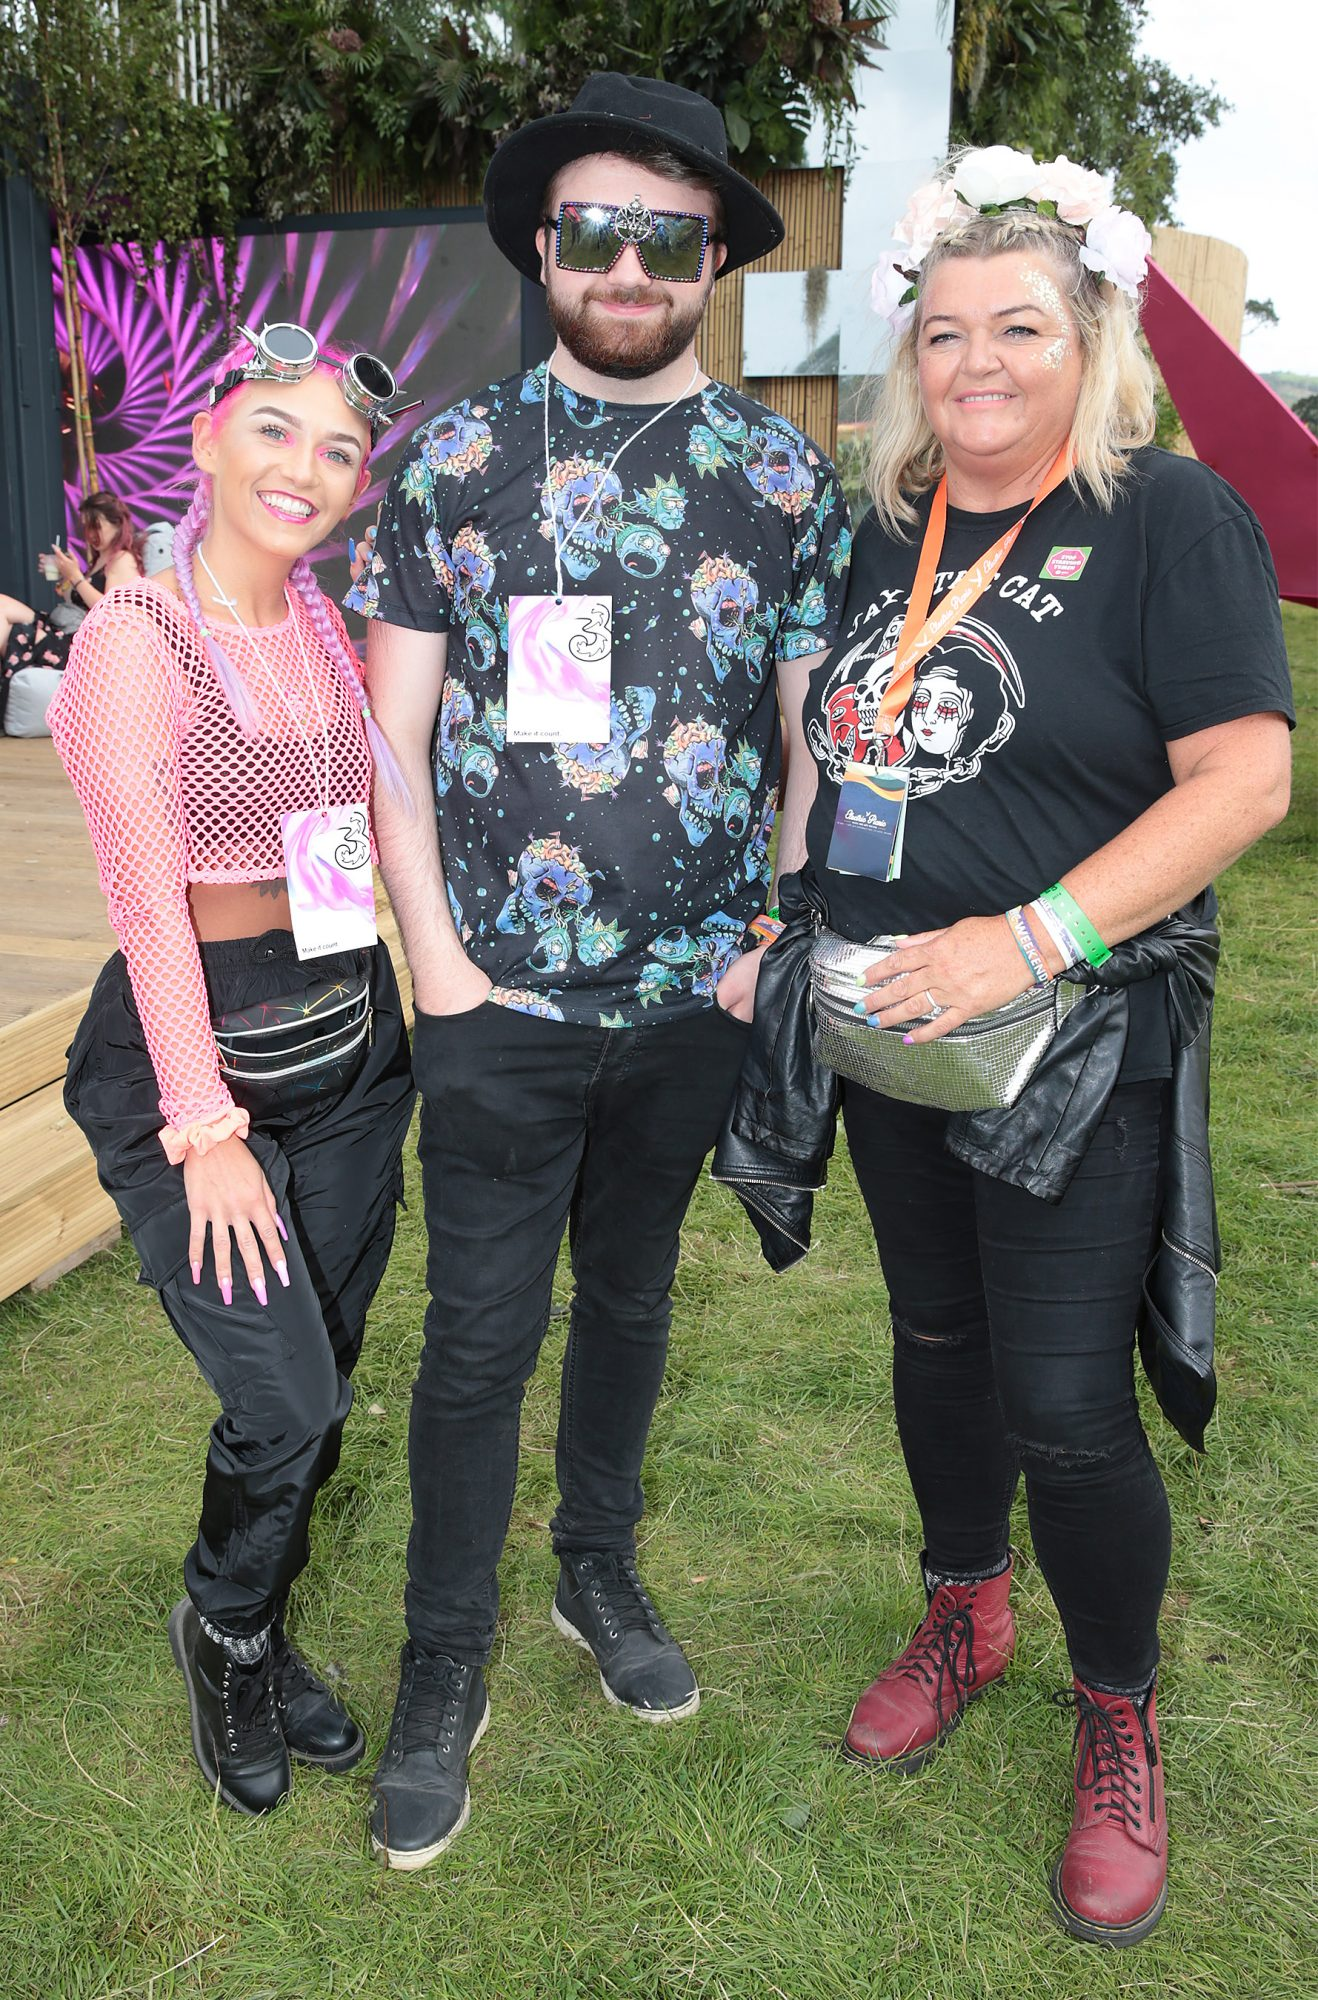 Sarah Farrell, Shea McDonald and Cat Coogan at Three's Charge & Chill at Electric Picnic at Stradbally, Co. Laois. 